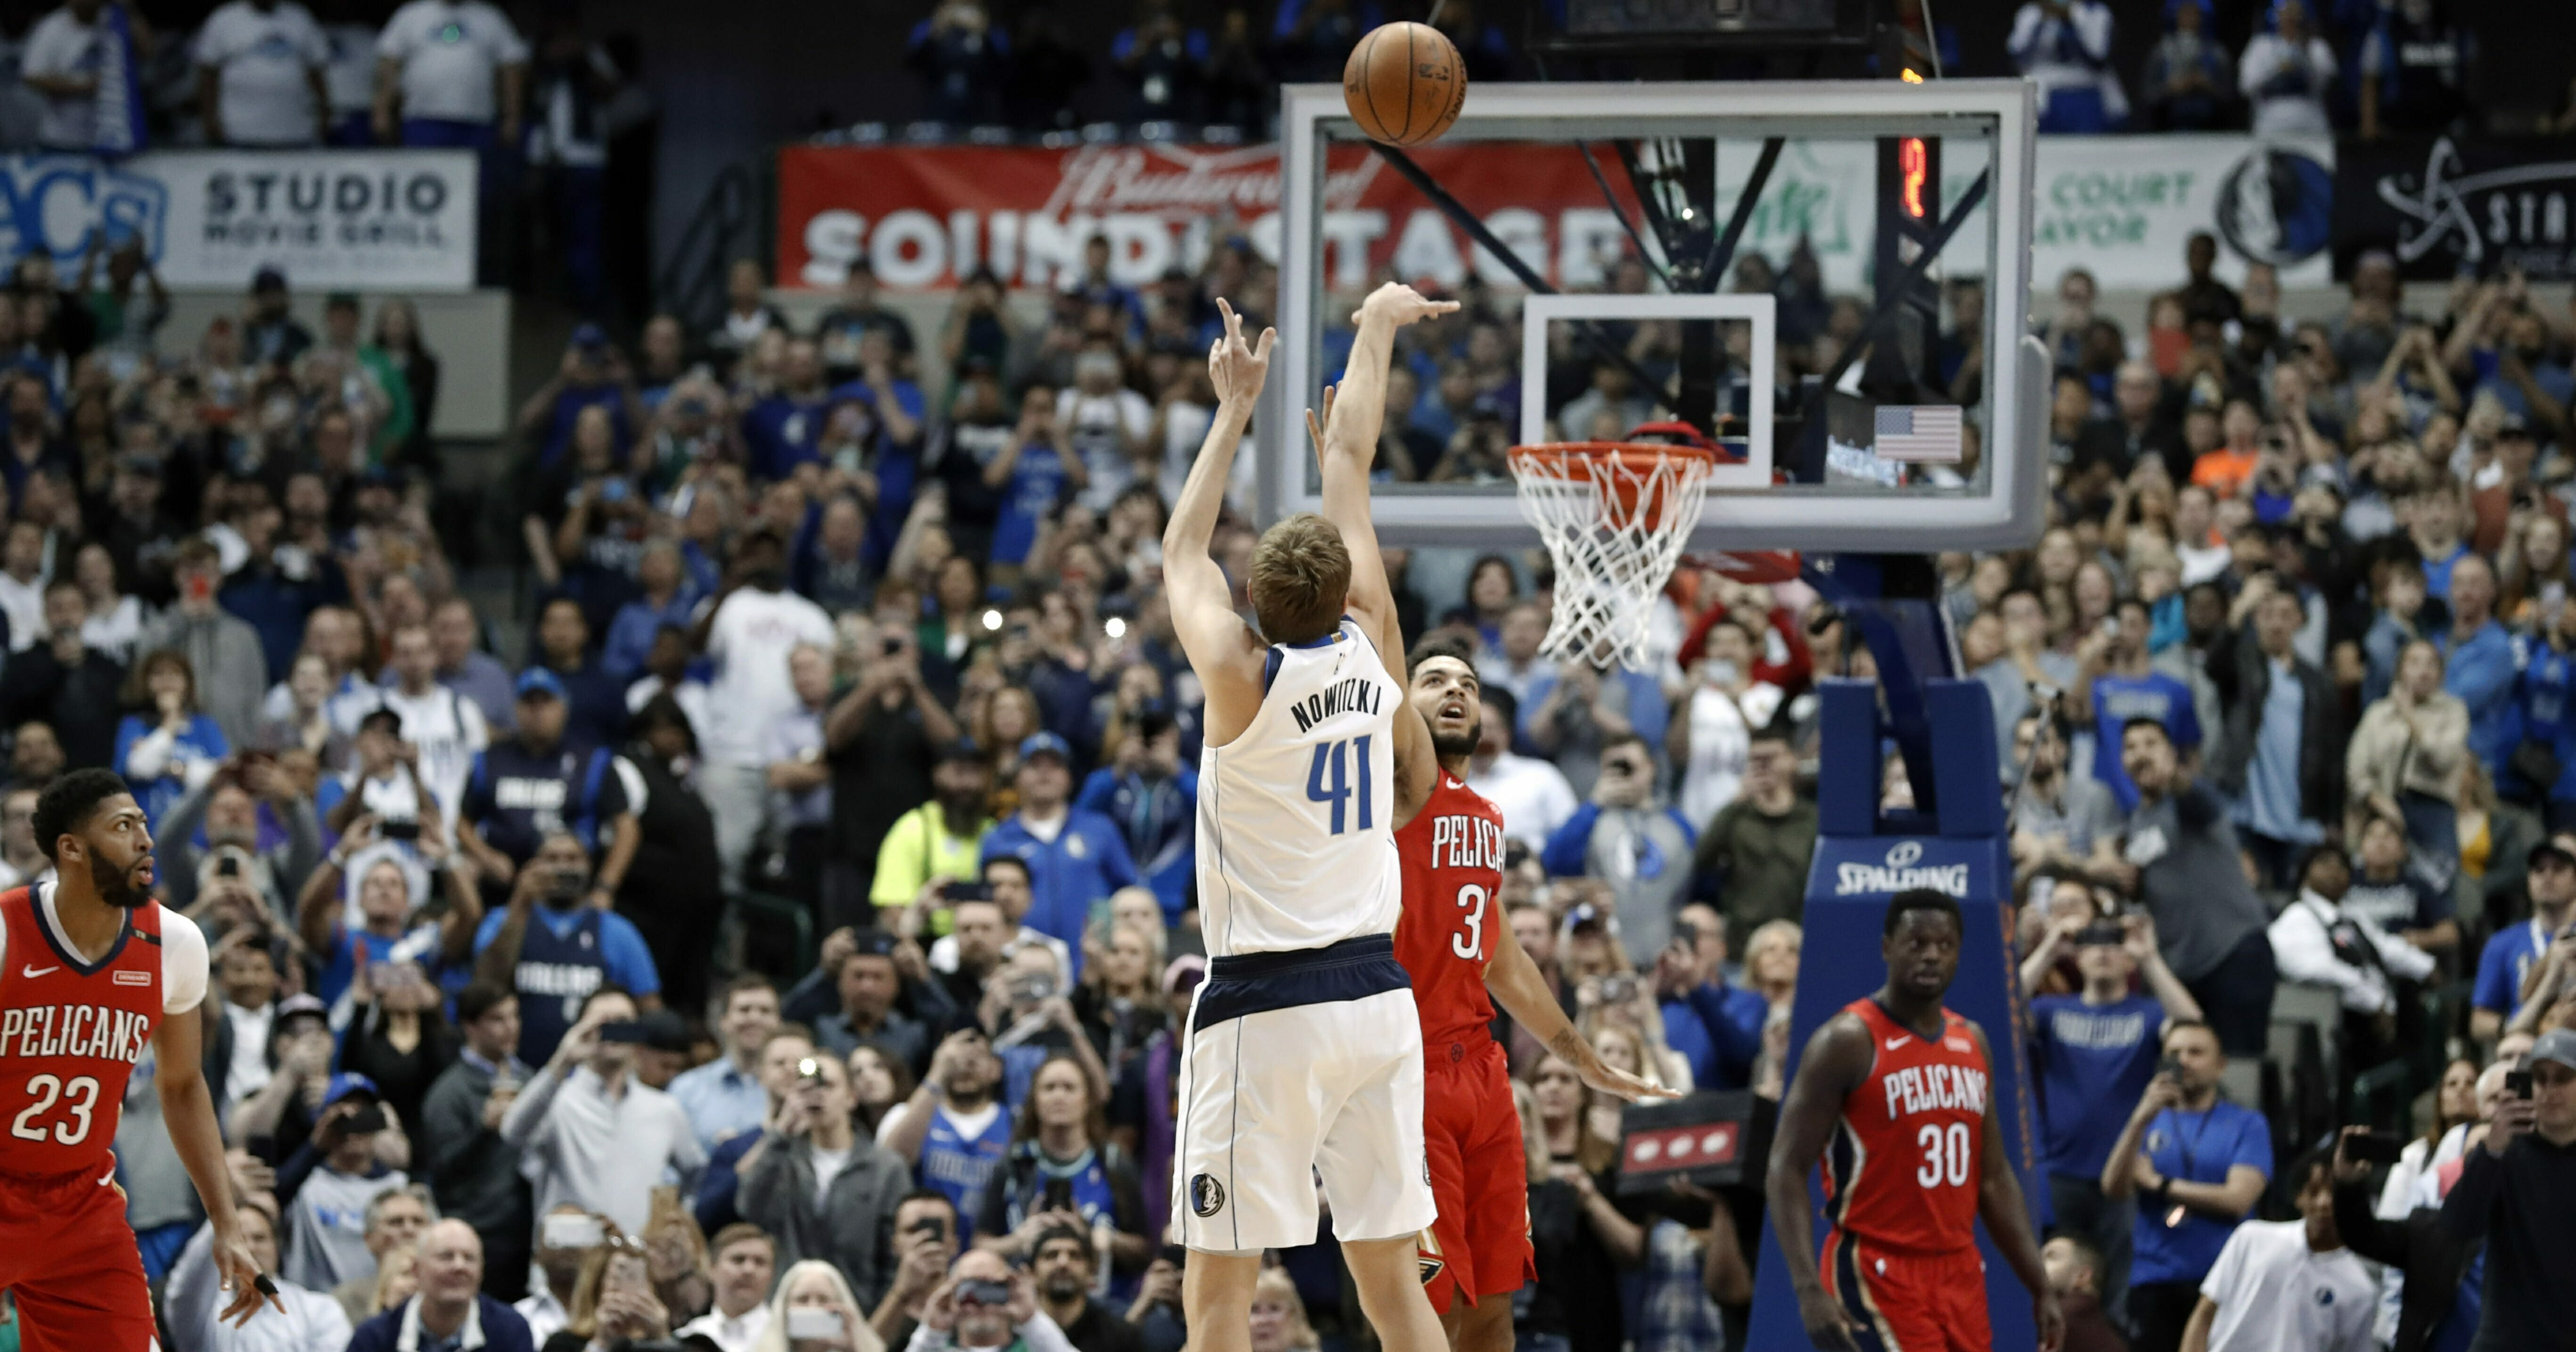 Dallas Mavericks forward Dirk Nowitzki shoots as New Orleans Pelicans' Kenrich Williams defends in the first half of an NBA basketball game in Dallas, Monday, March 18, 2019.